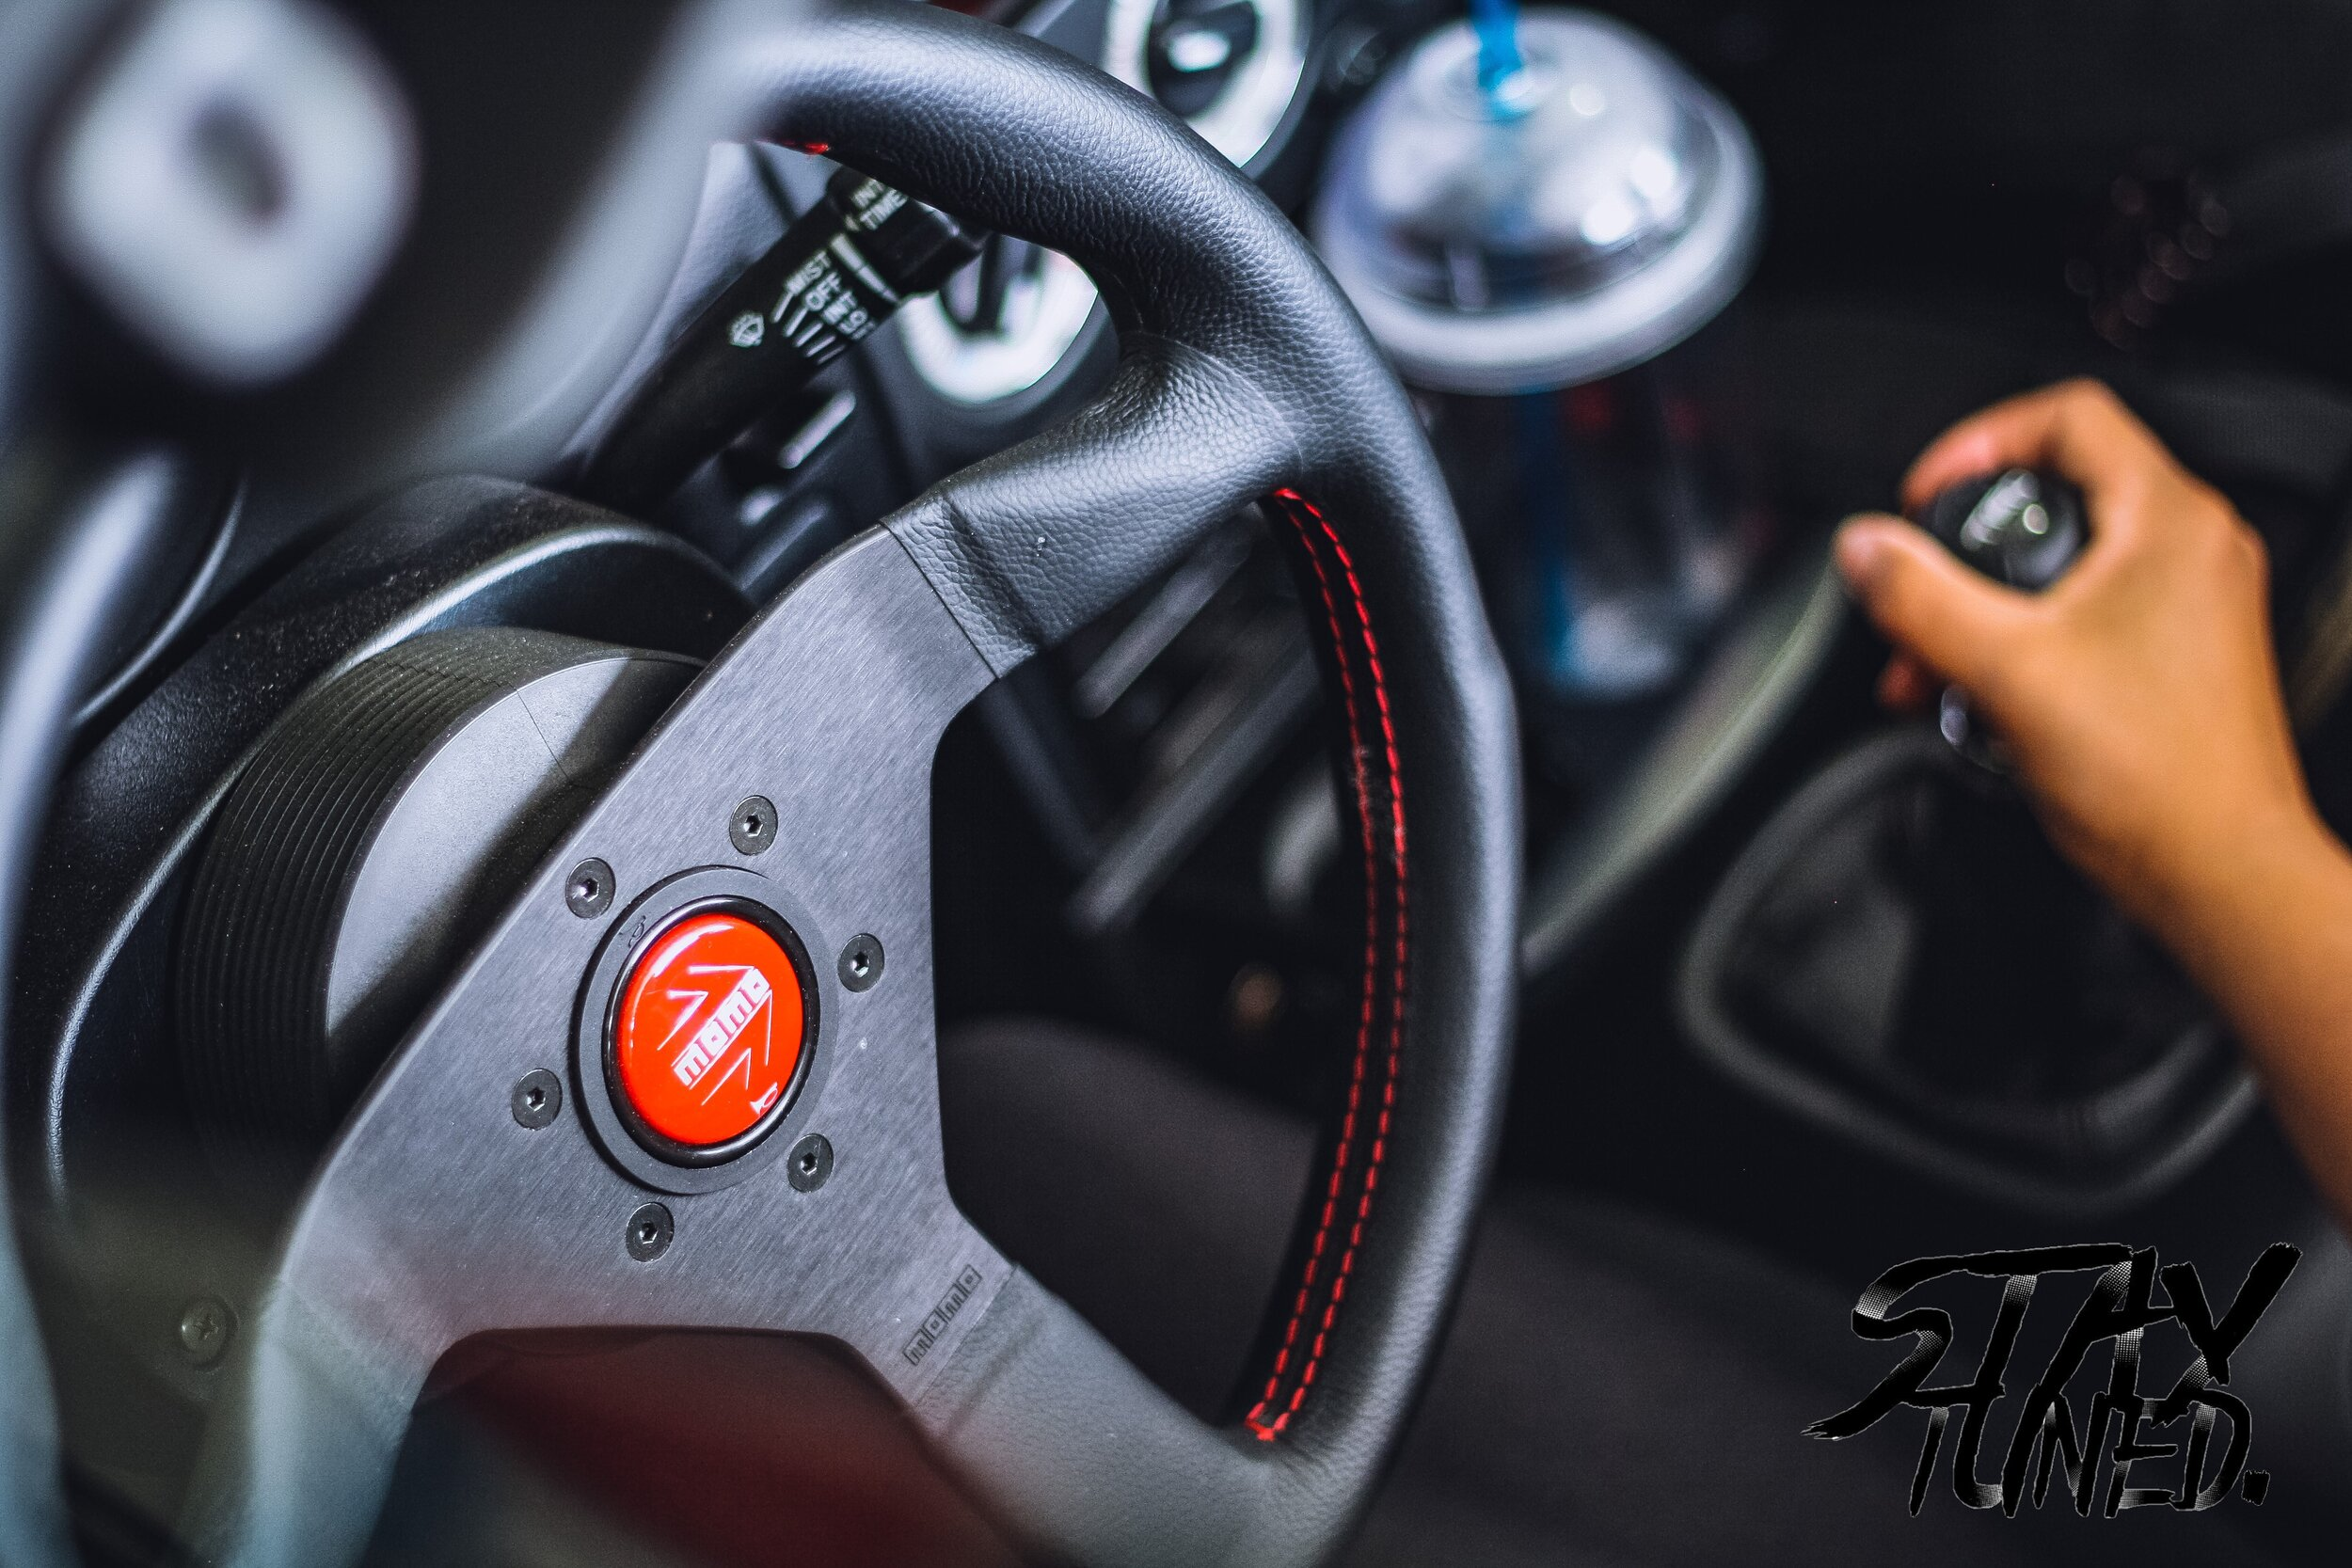 One of the most important interior mods was next. 350mm MOMO monte carlo. Ive honestly had maybe 7 or 8 of these steering wheels in my time with cars. Every build or street car has run one, and I will not run anything else. Simple, elegant, classic.